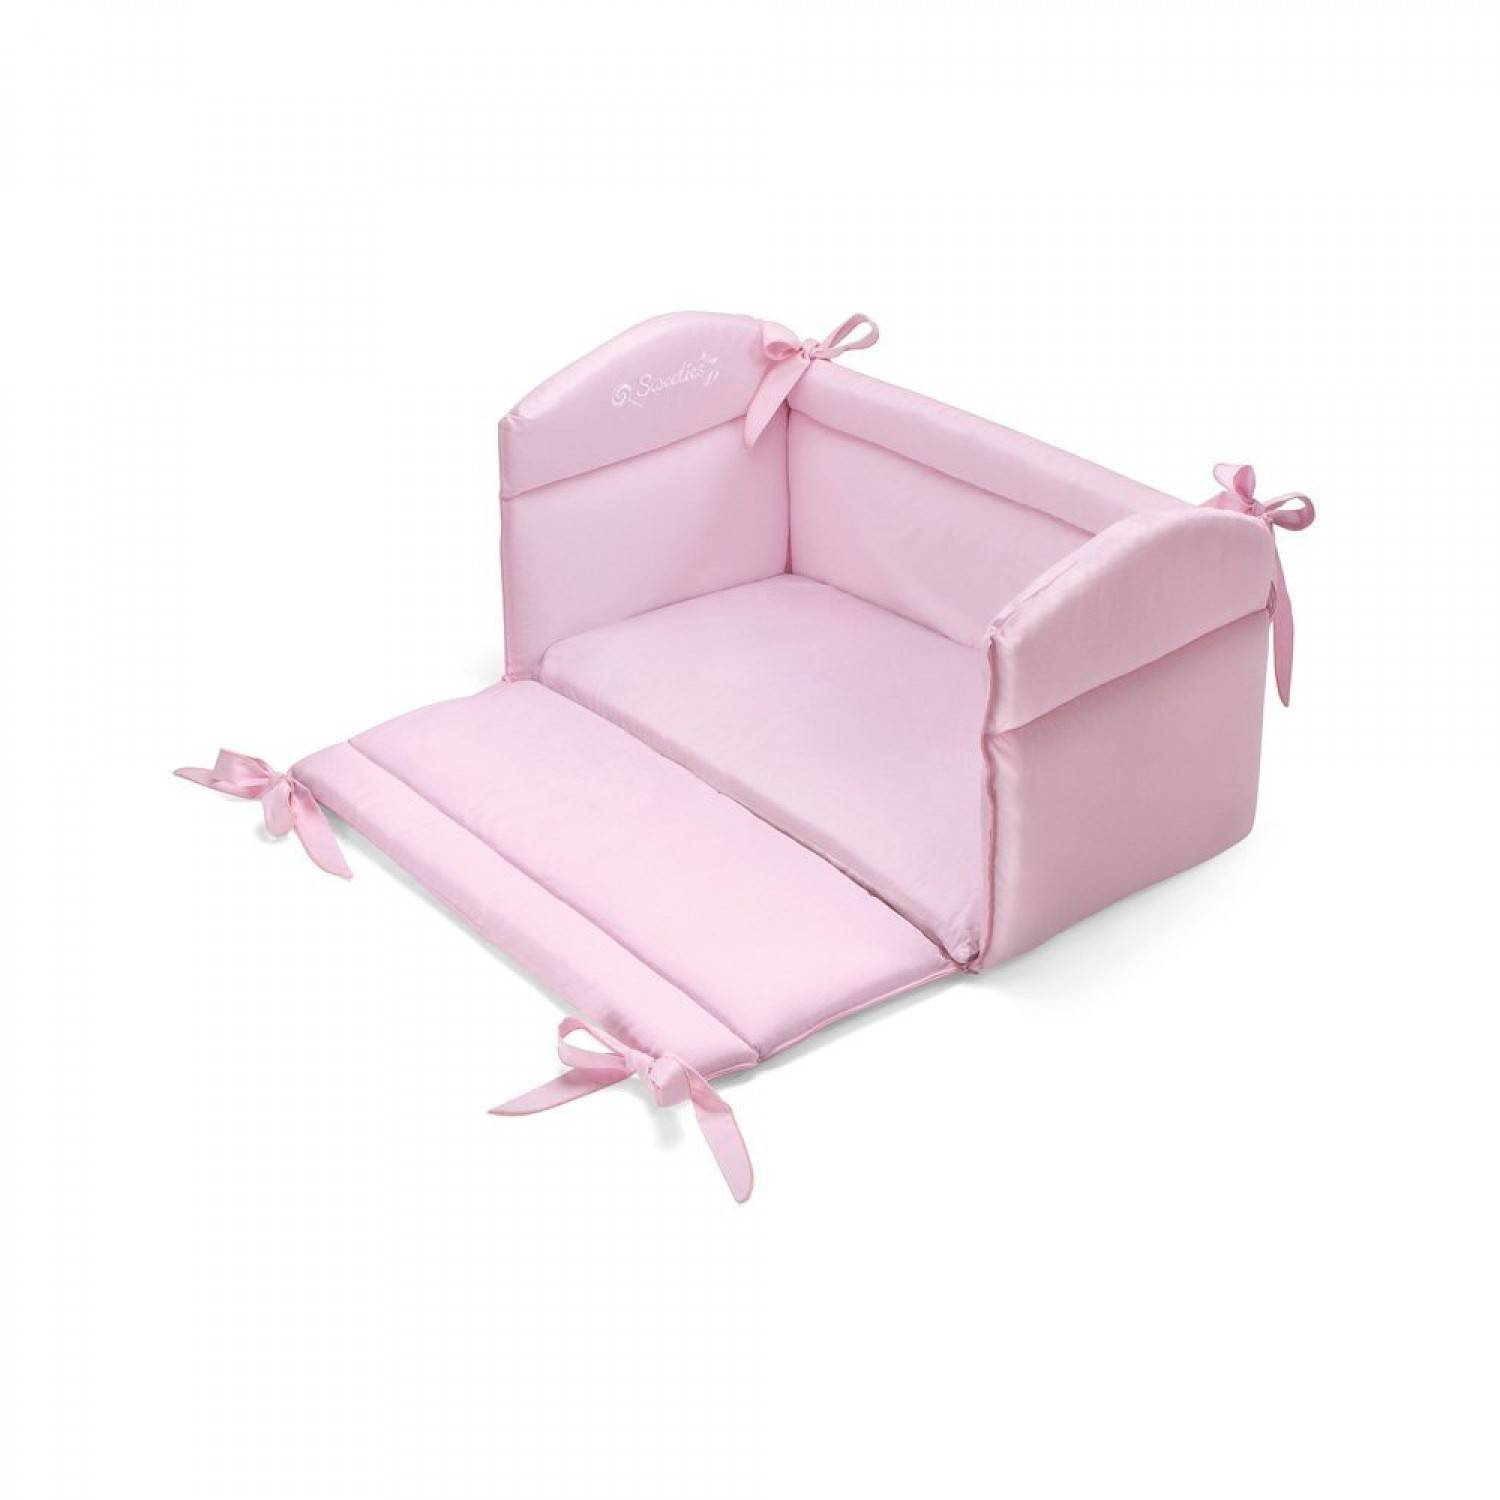 Pali Riduttore Lettino Pali Multiplo 3 in 1 Sweeties Rosa